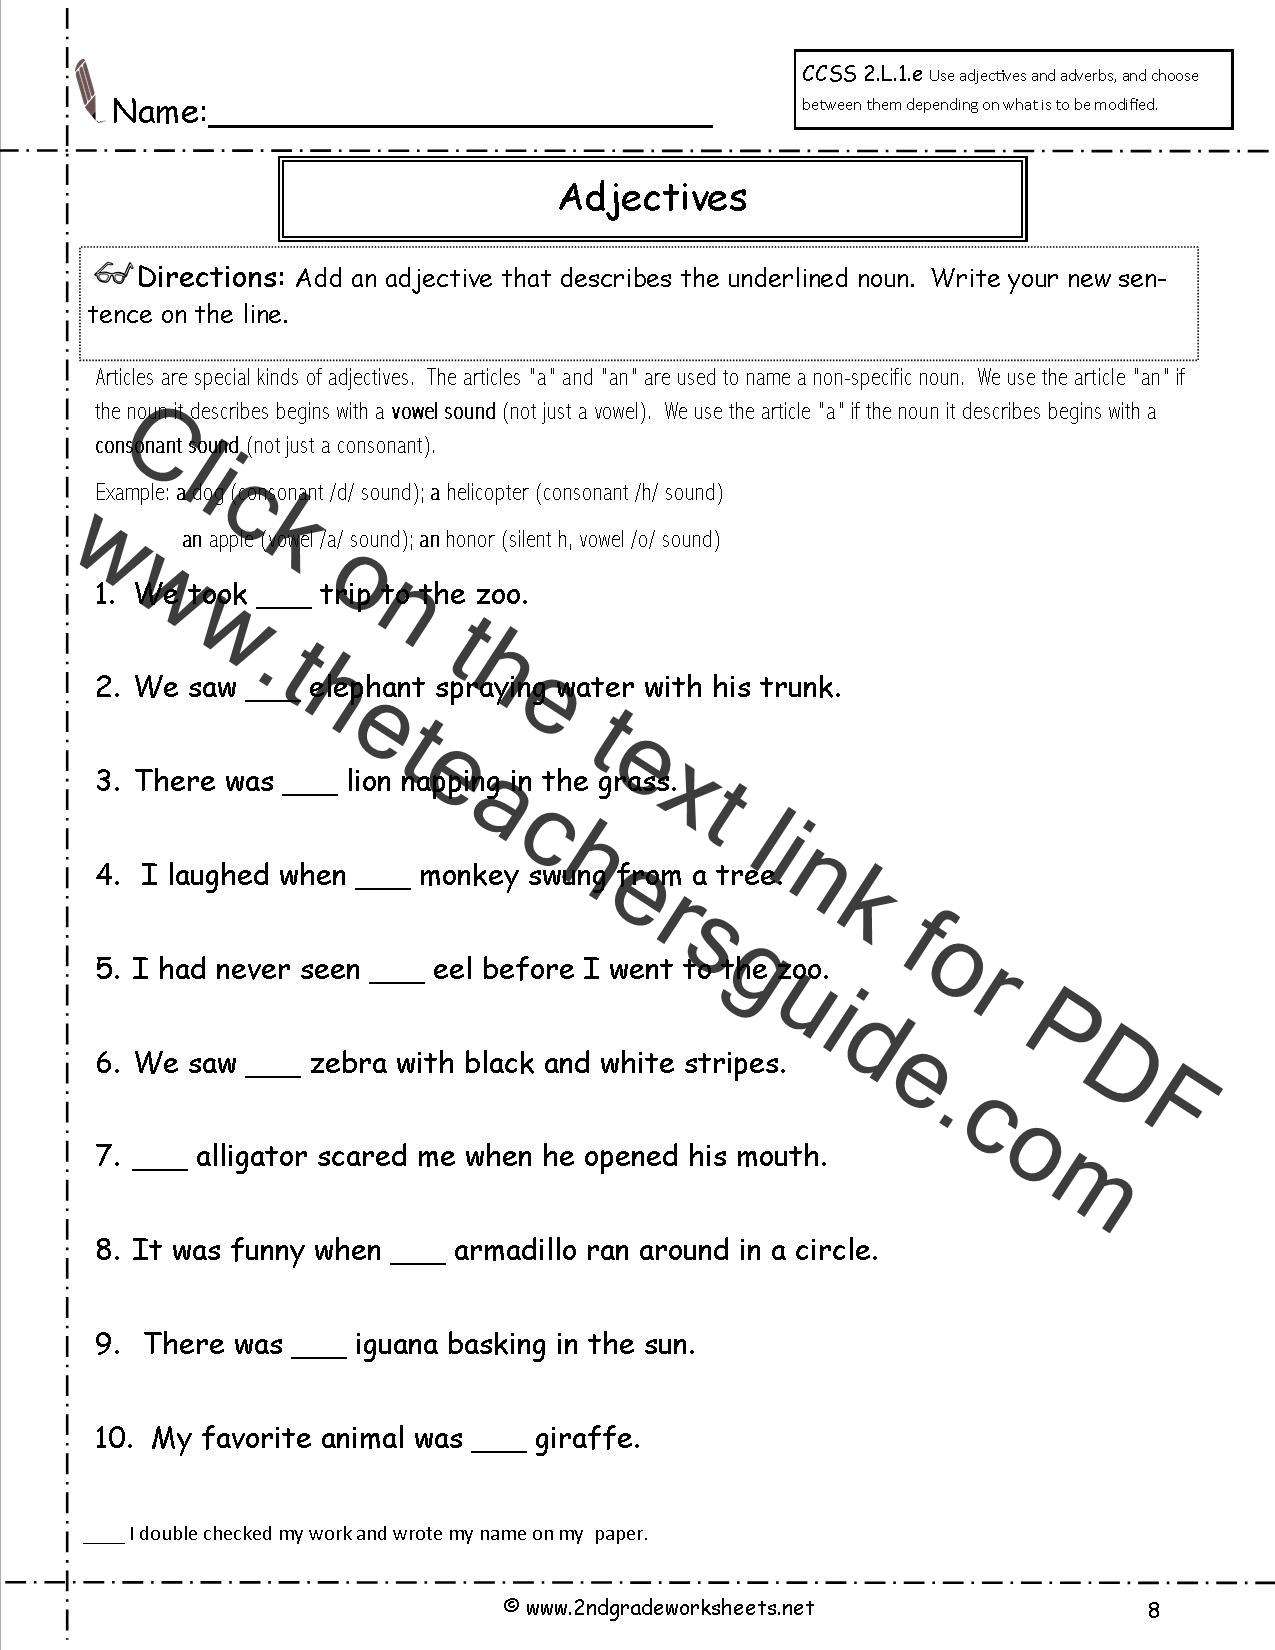 Free LanguageGrammar Worksheets and Printouts – 2nd Grade Worksheet